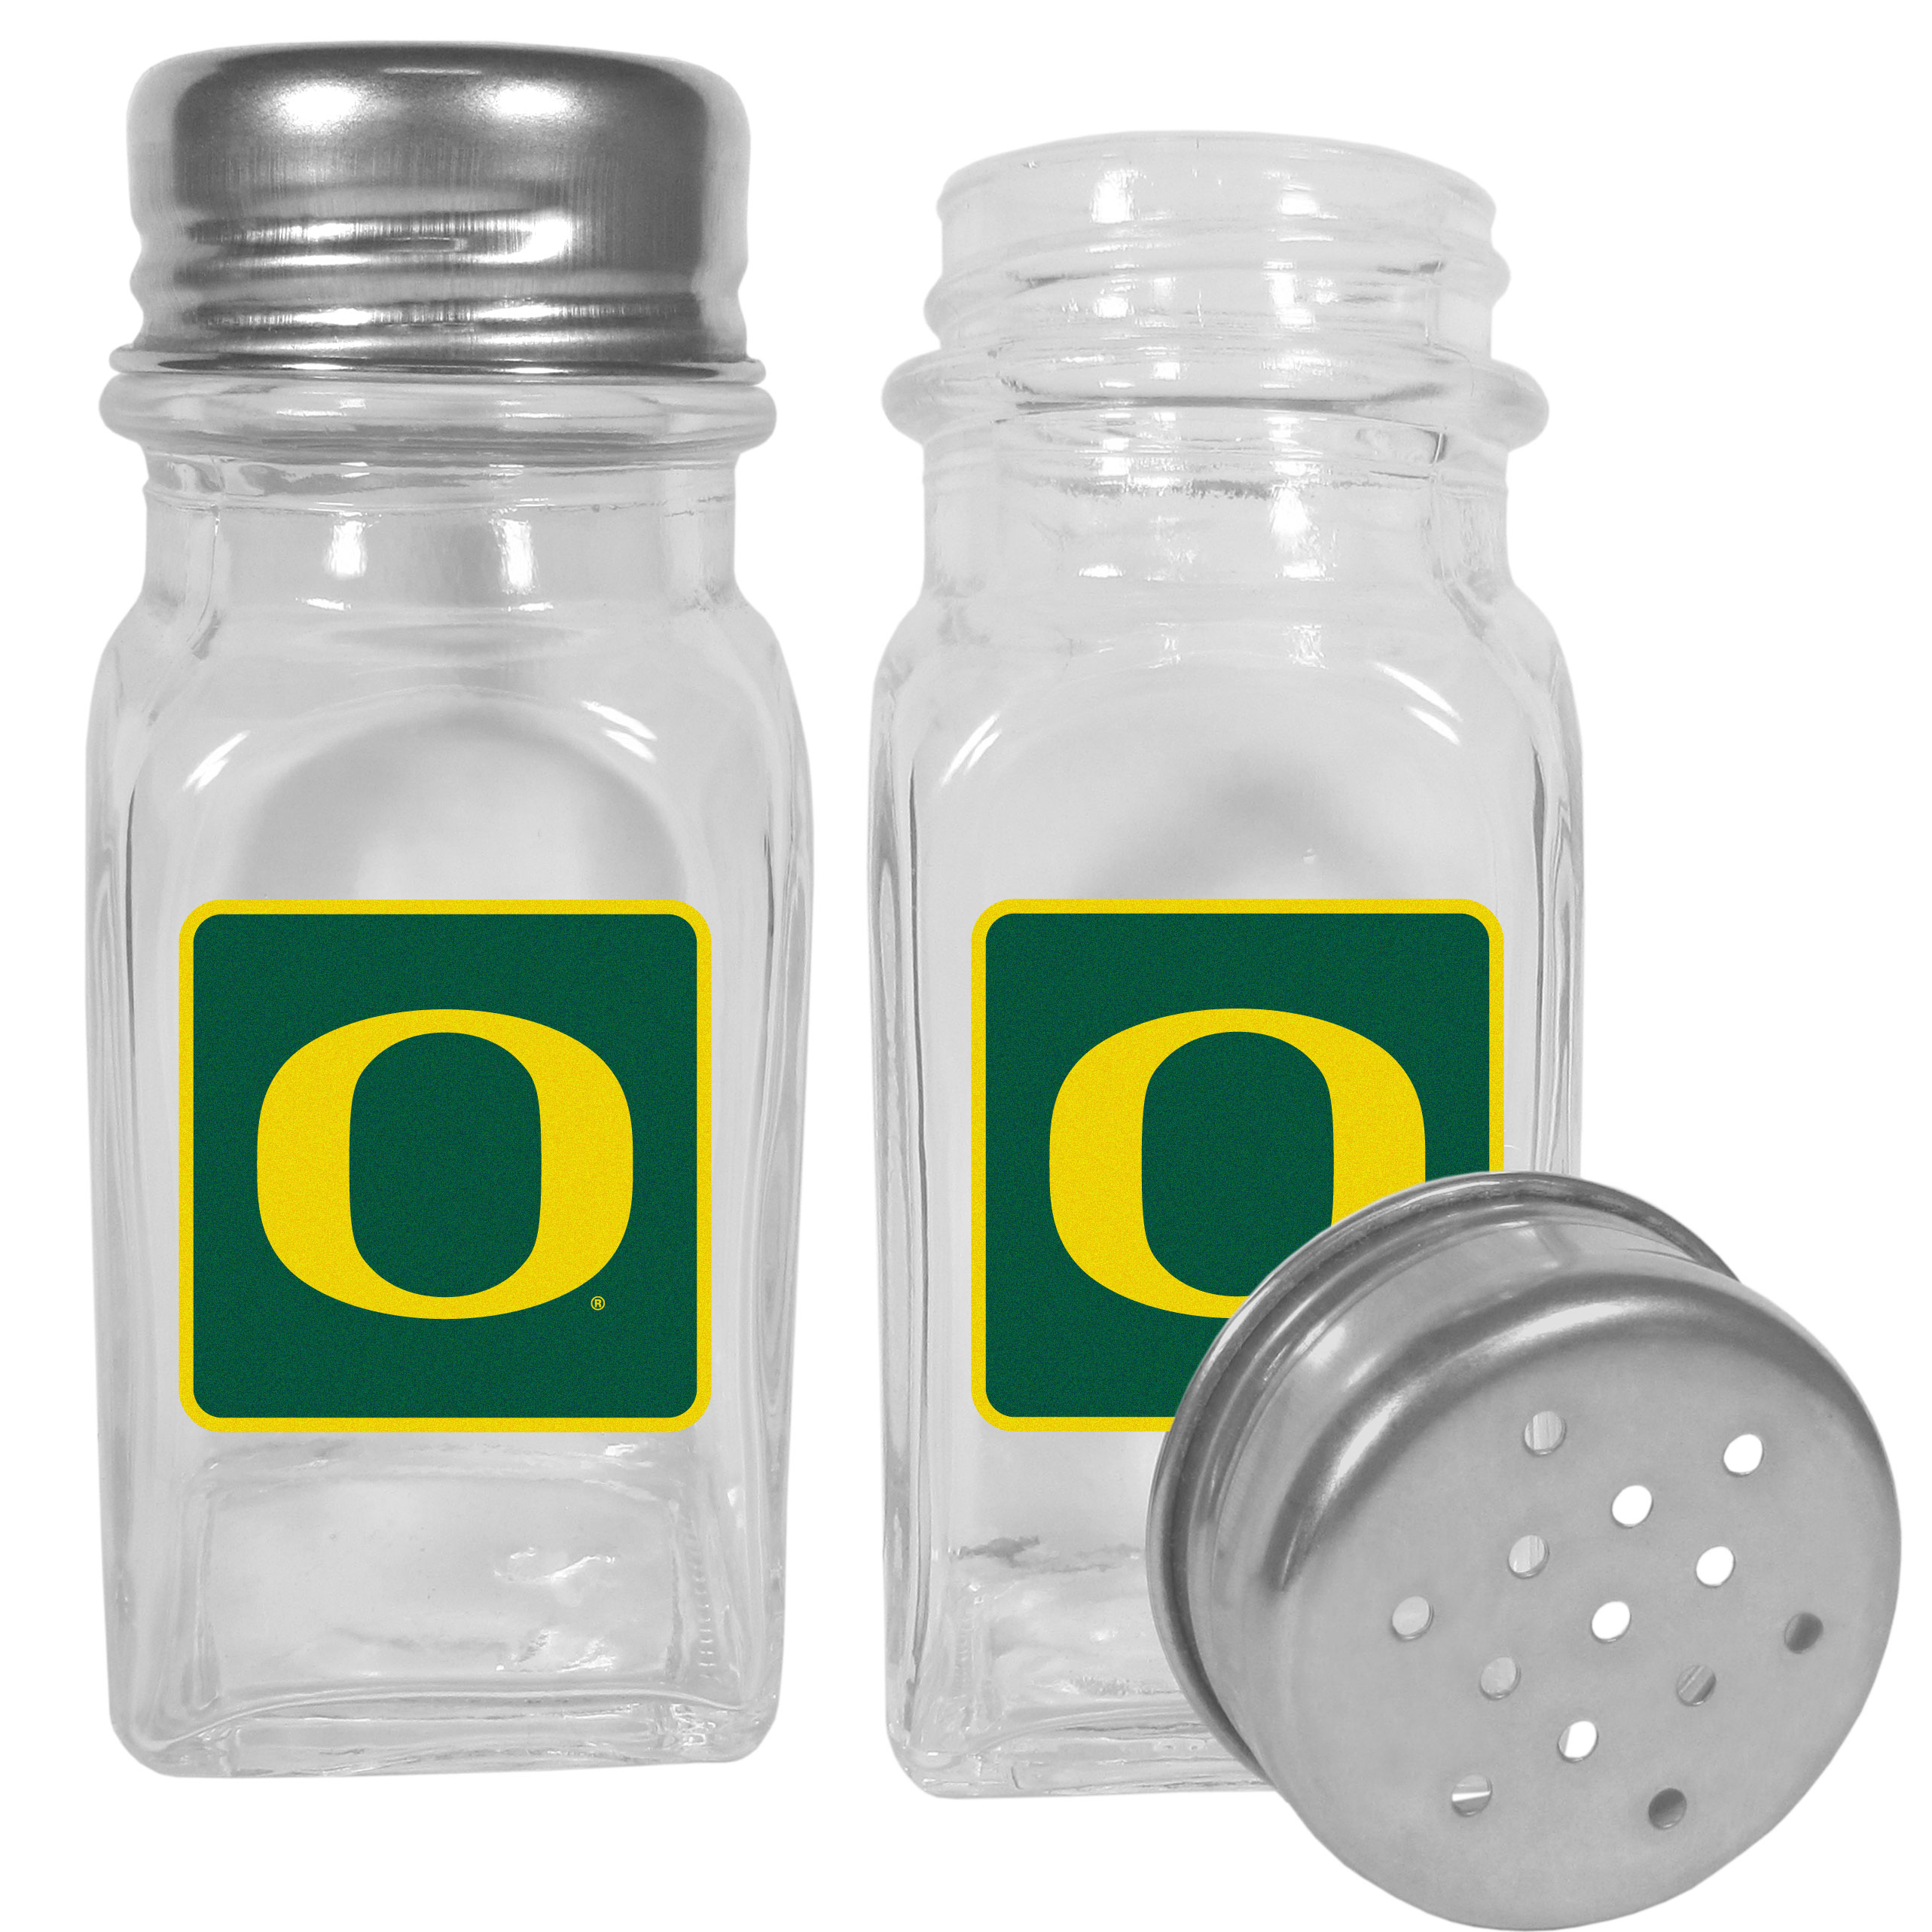 Oregon Ducks Graphics Salt and Pepper Shaker - No tailgate party is complete without your Oregon Ducks salt & pepper shakers featuring bright team logos. The diner replica salt and pepper shakers are glass with screw top lids. These team shakers are a great grill accessory whether you are barbecuing on the patio, picnicing or having a game day party.